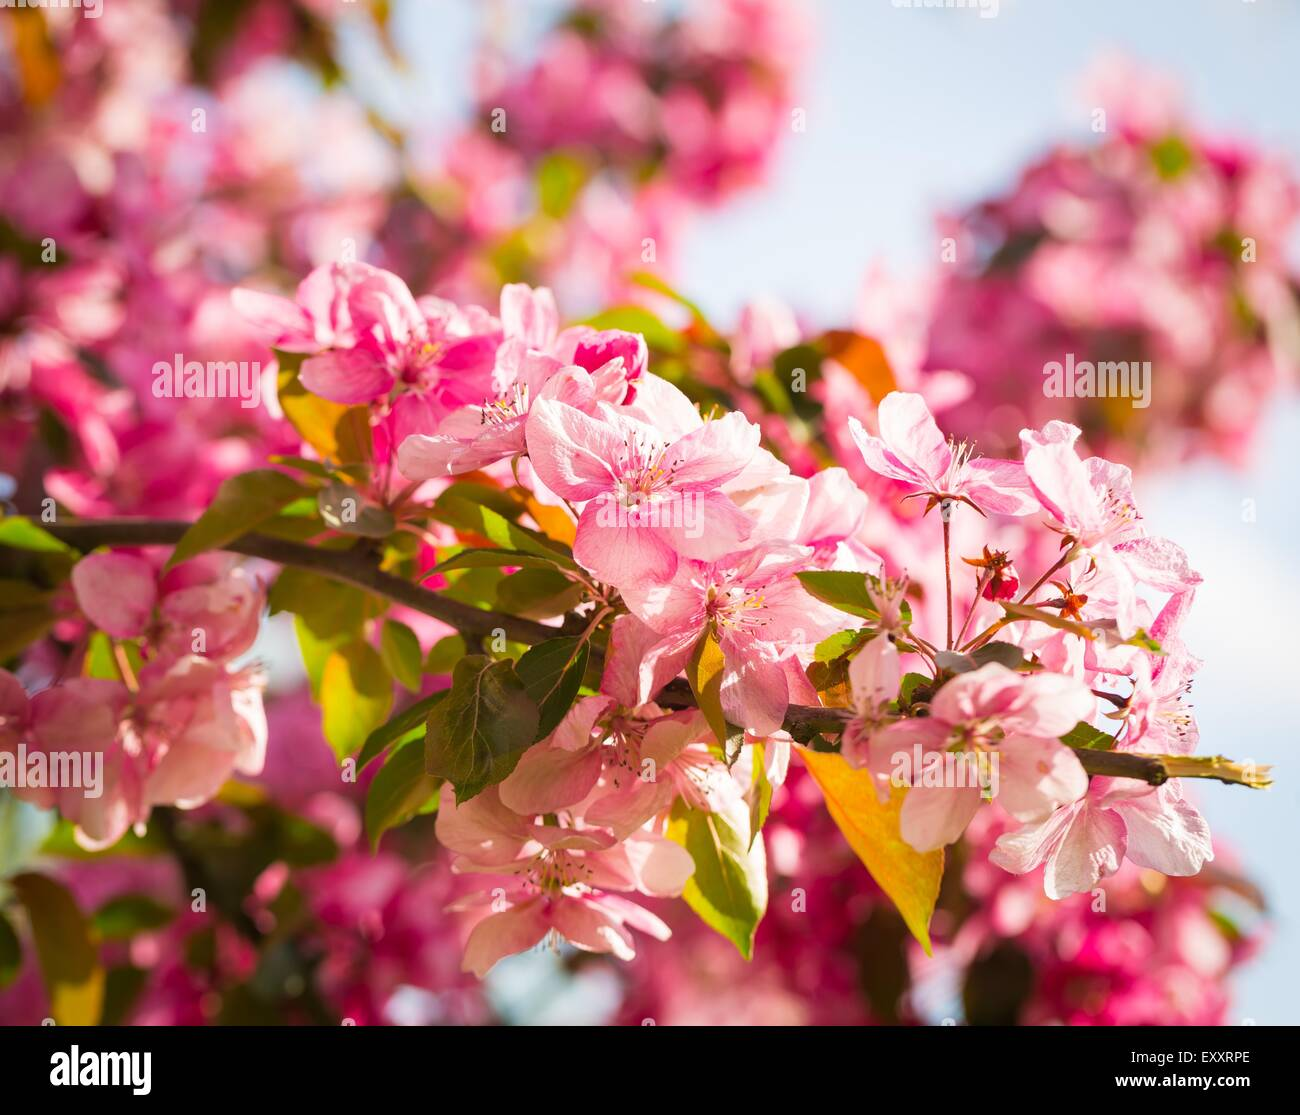 Malus Pumila Natural Lovely Pink Fragrant Spring Flowers Of A